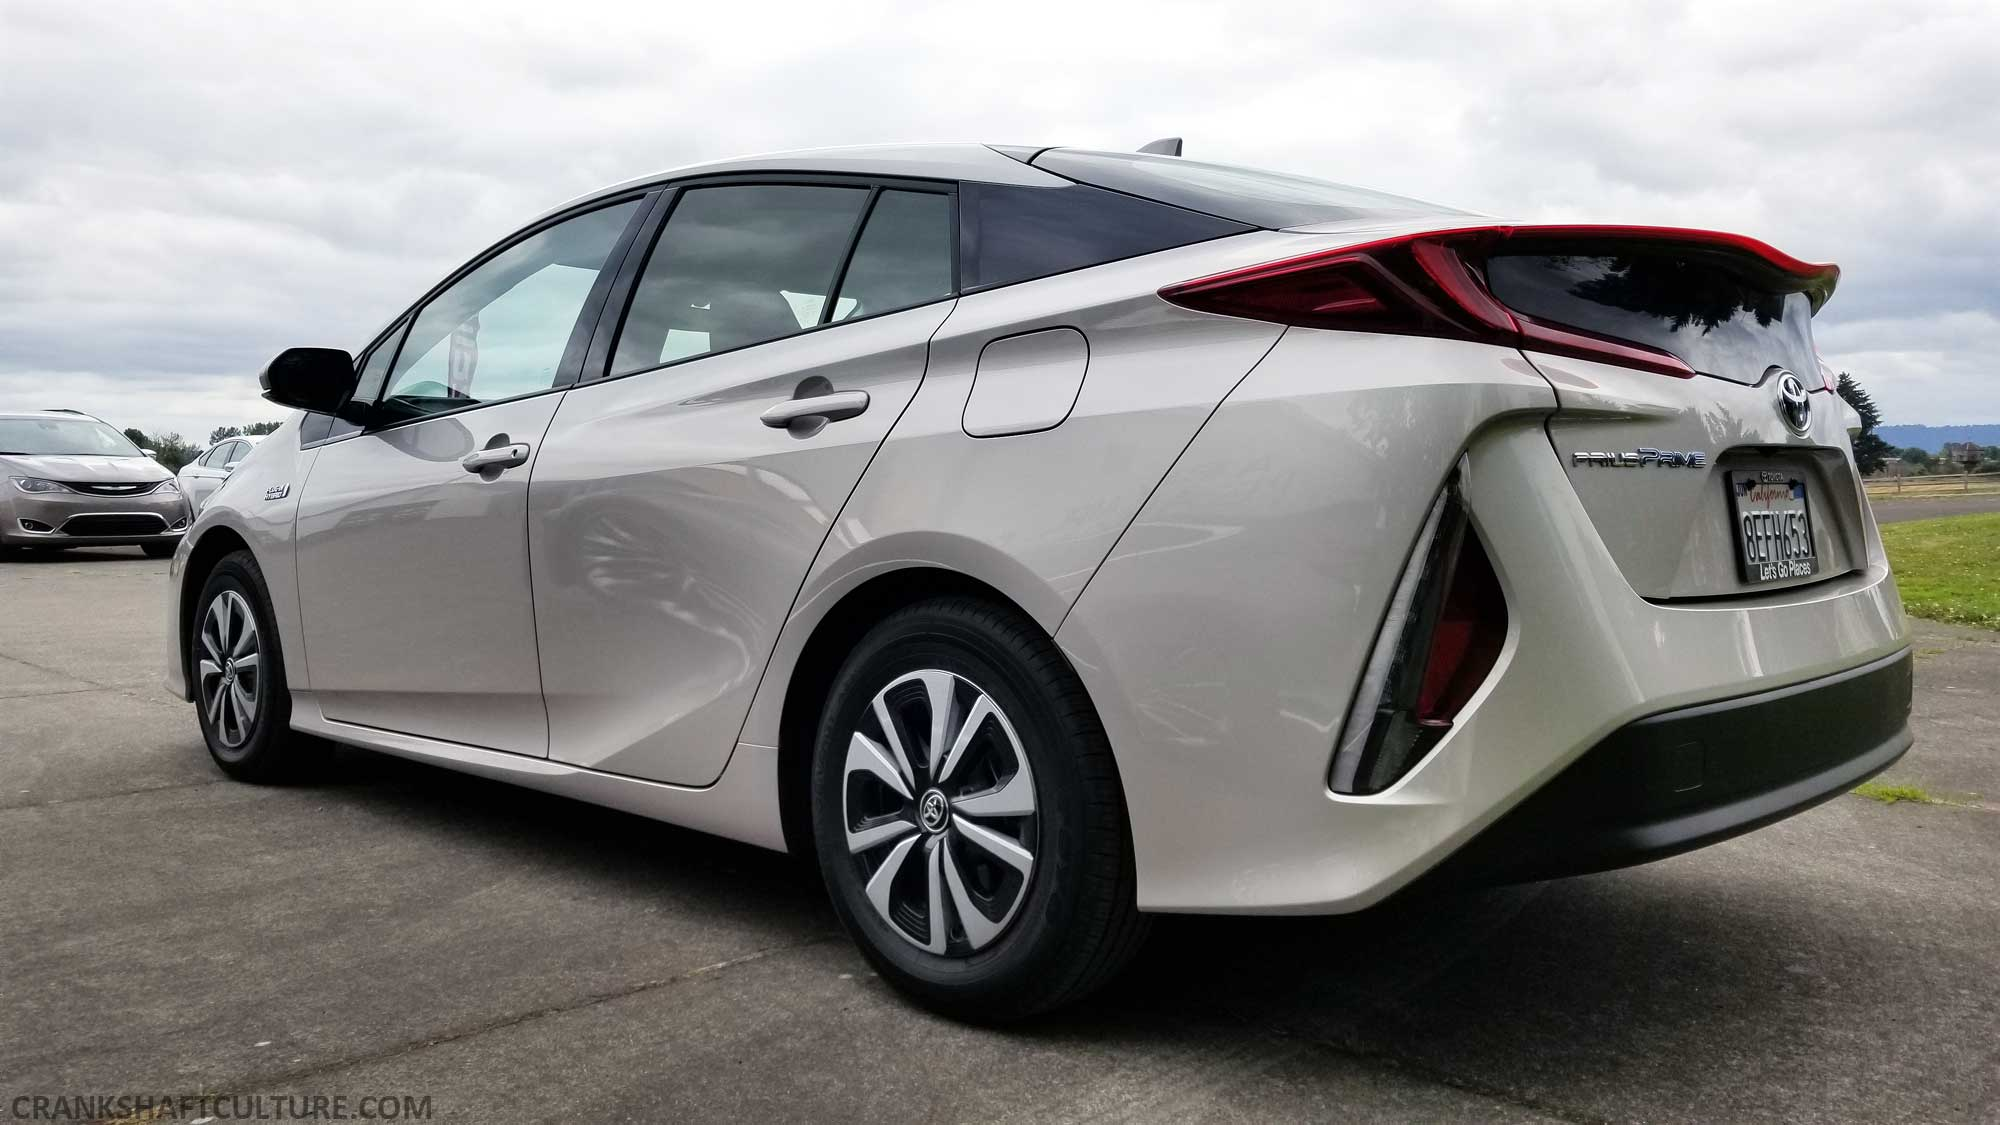 prius toyota prime hybrids hybrid plug affordable evs nwapa revolution driving drive candidate great